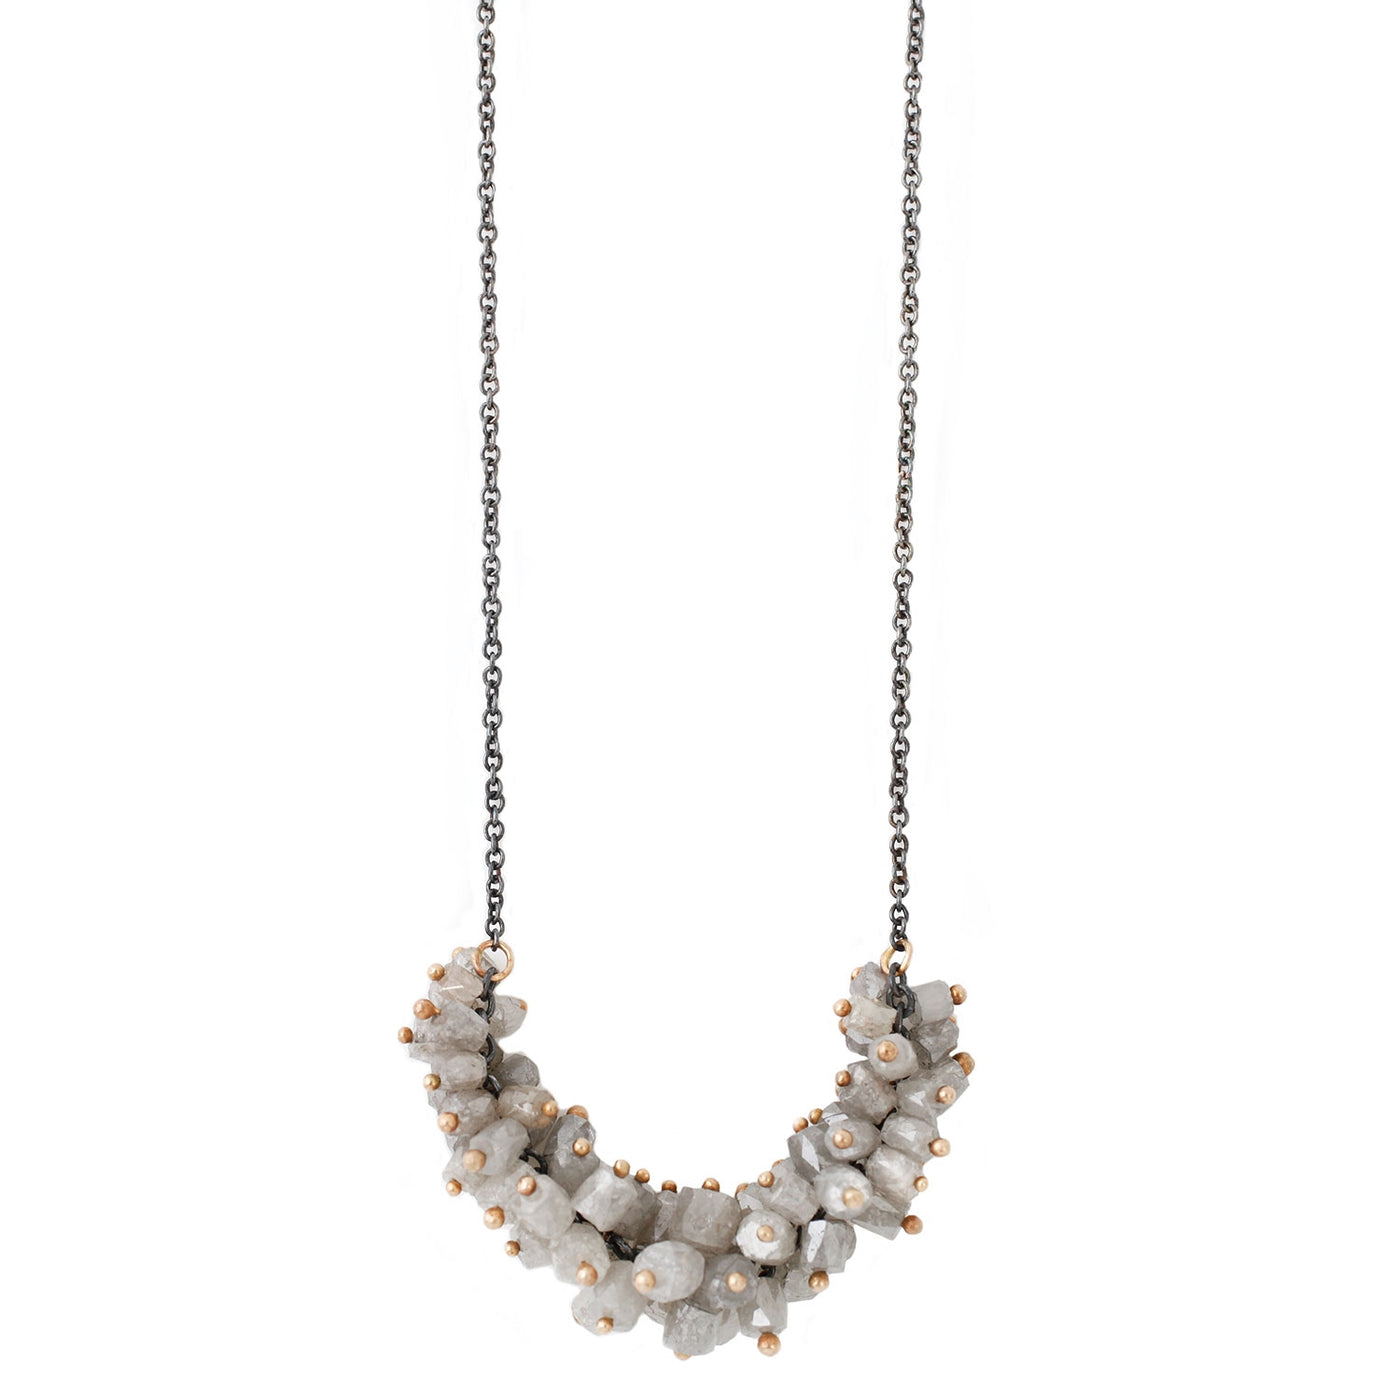 Rebecca Overmann Raw Grey Diamond Necklace